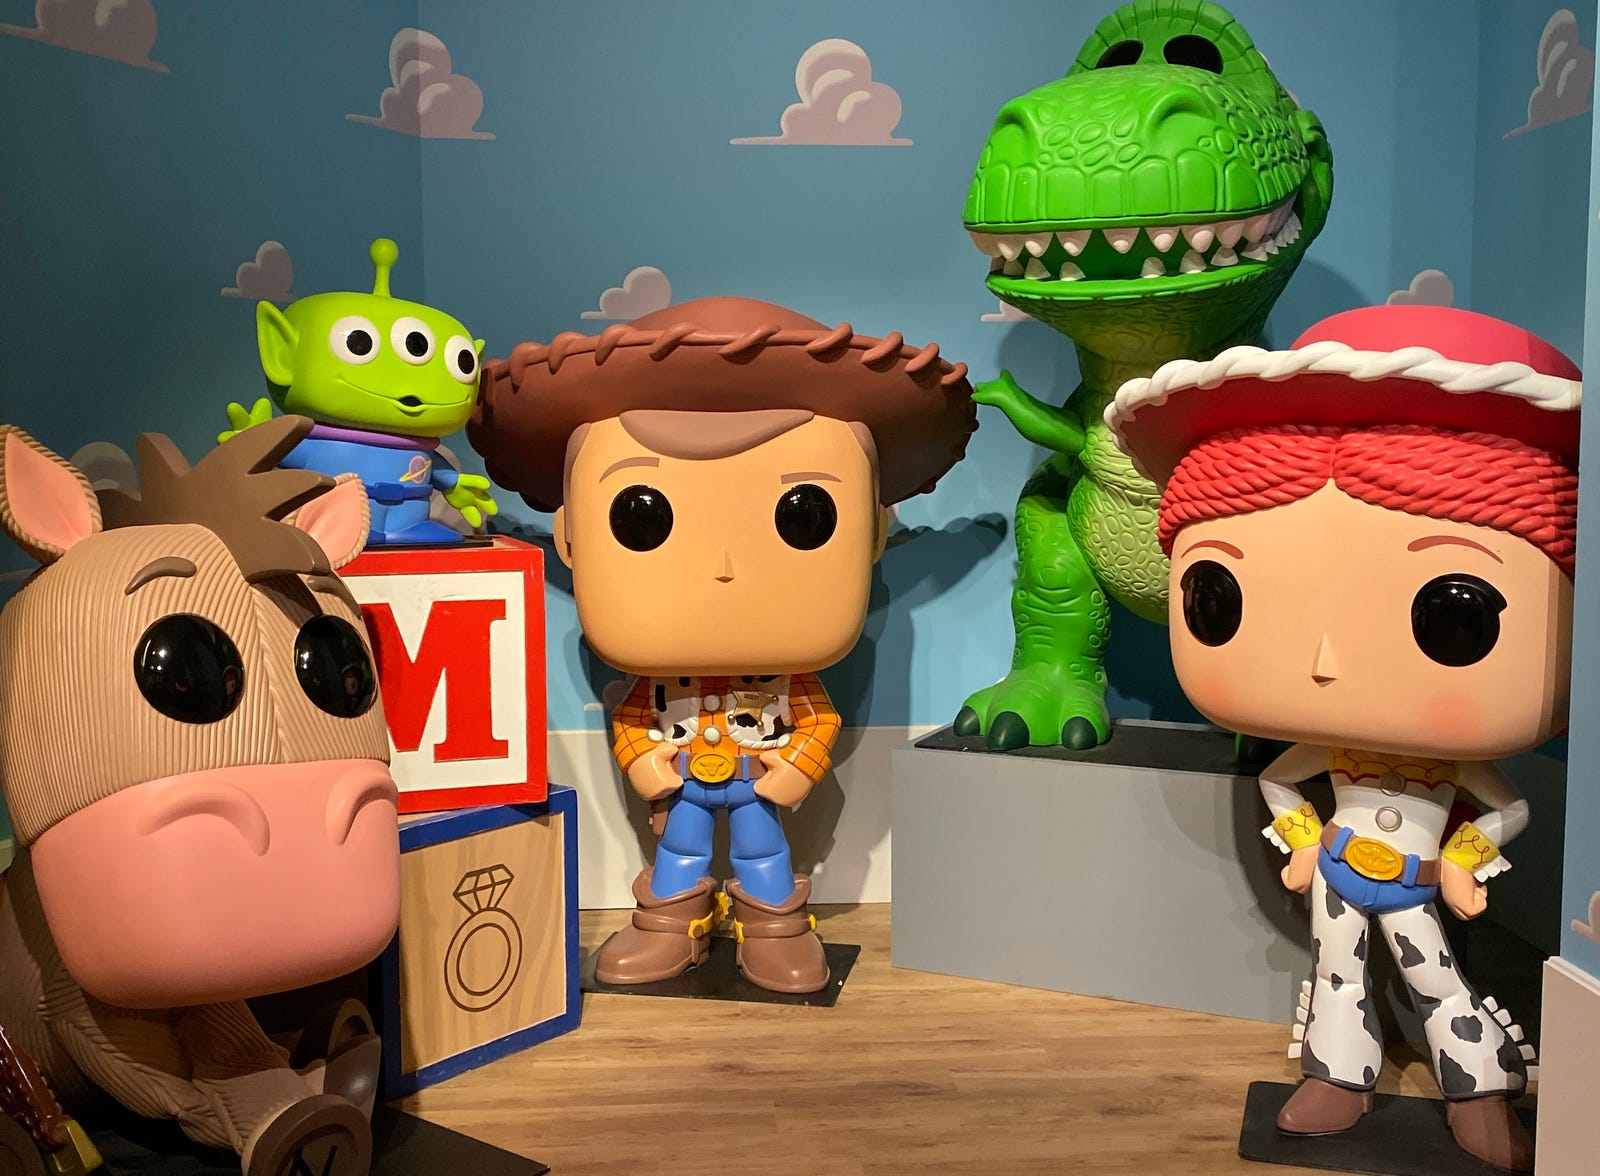 The Toy Story gang